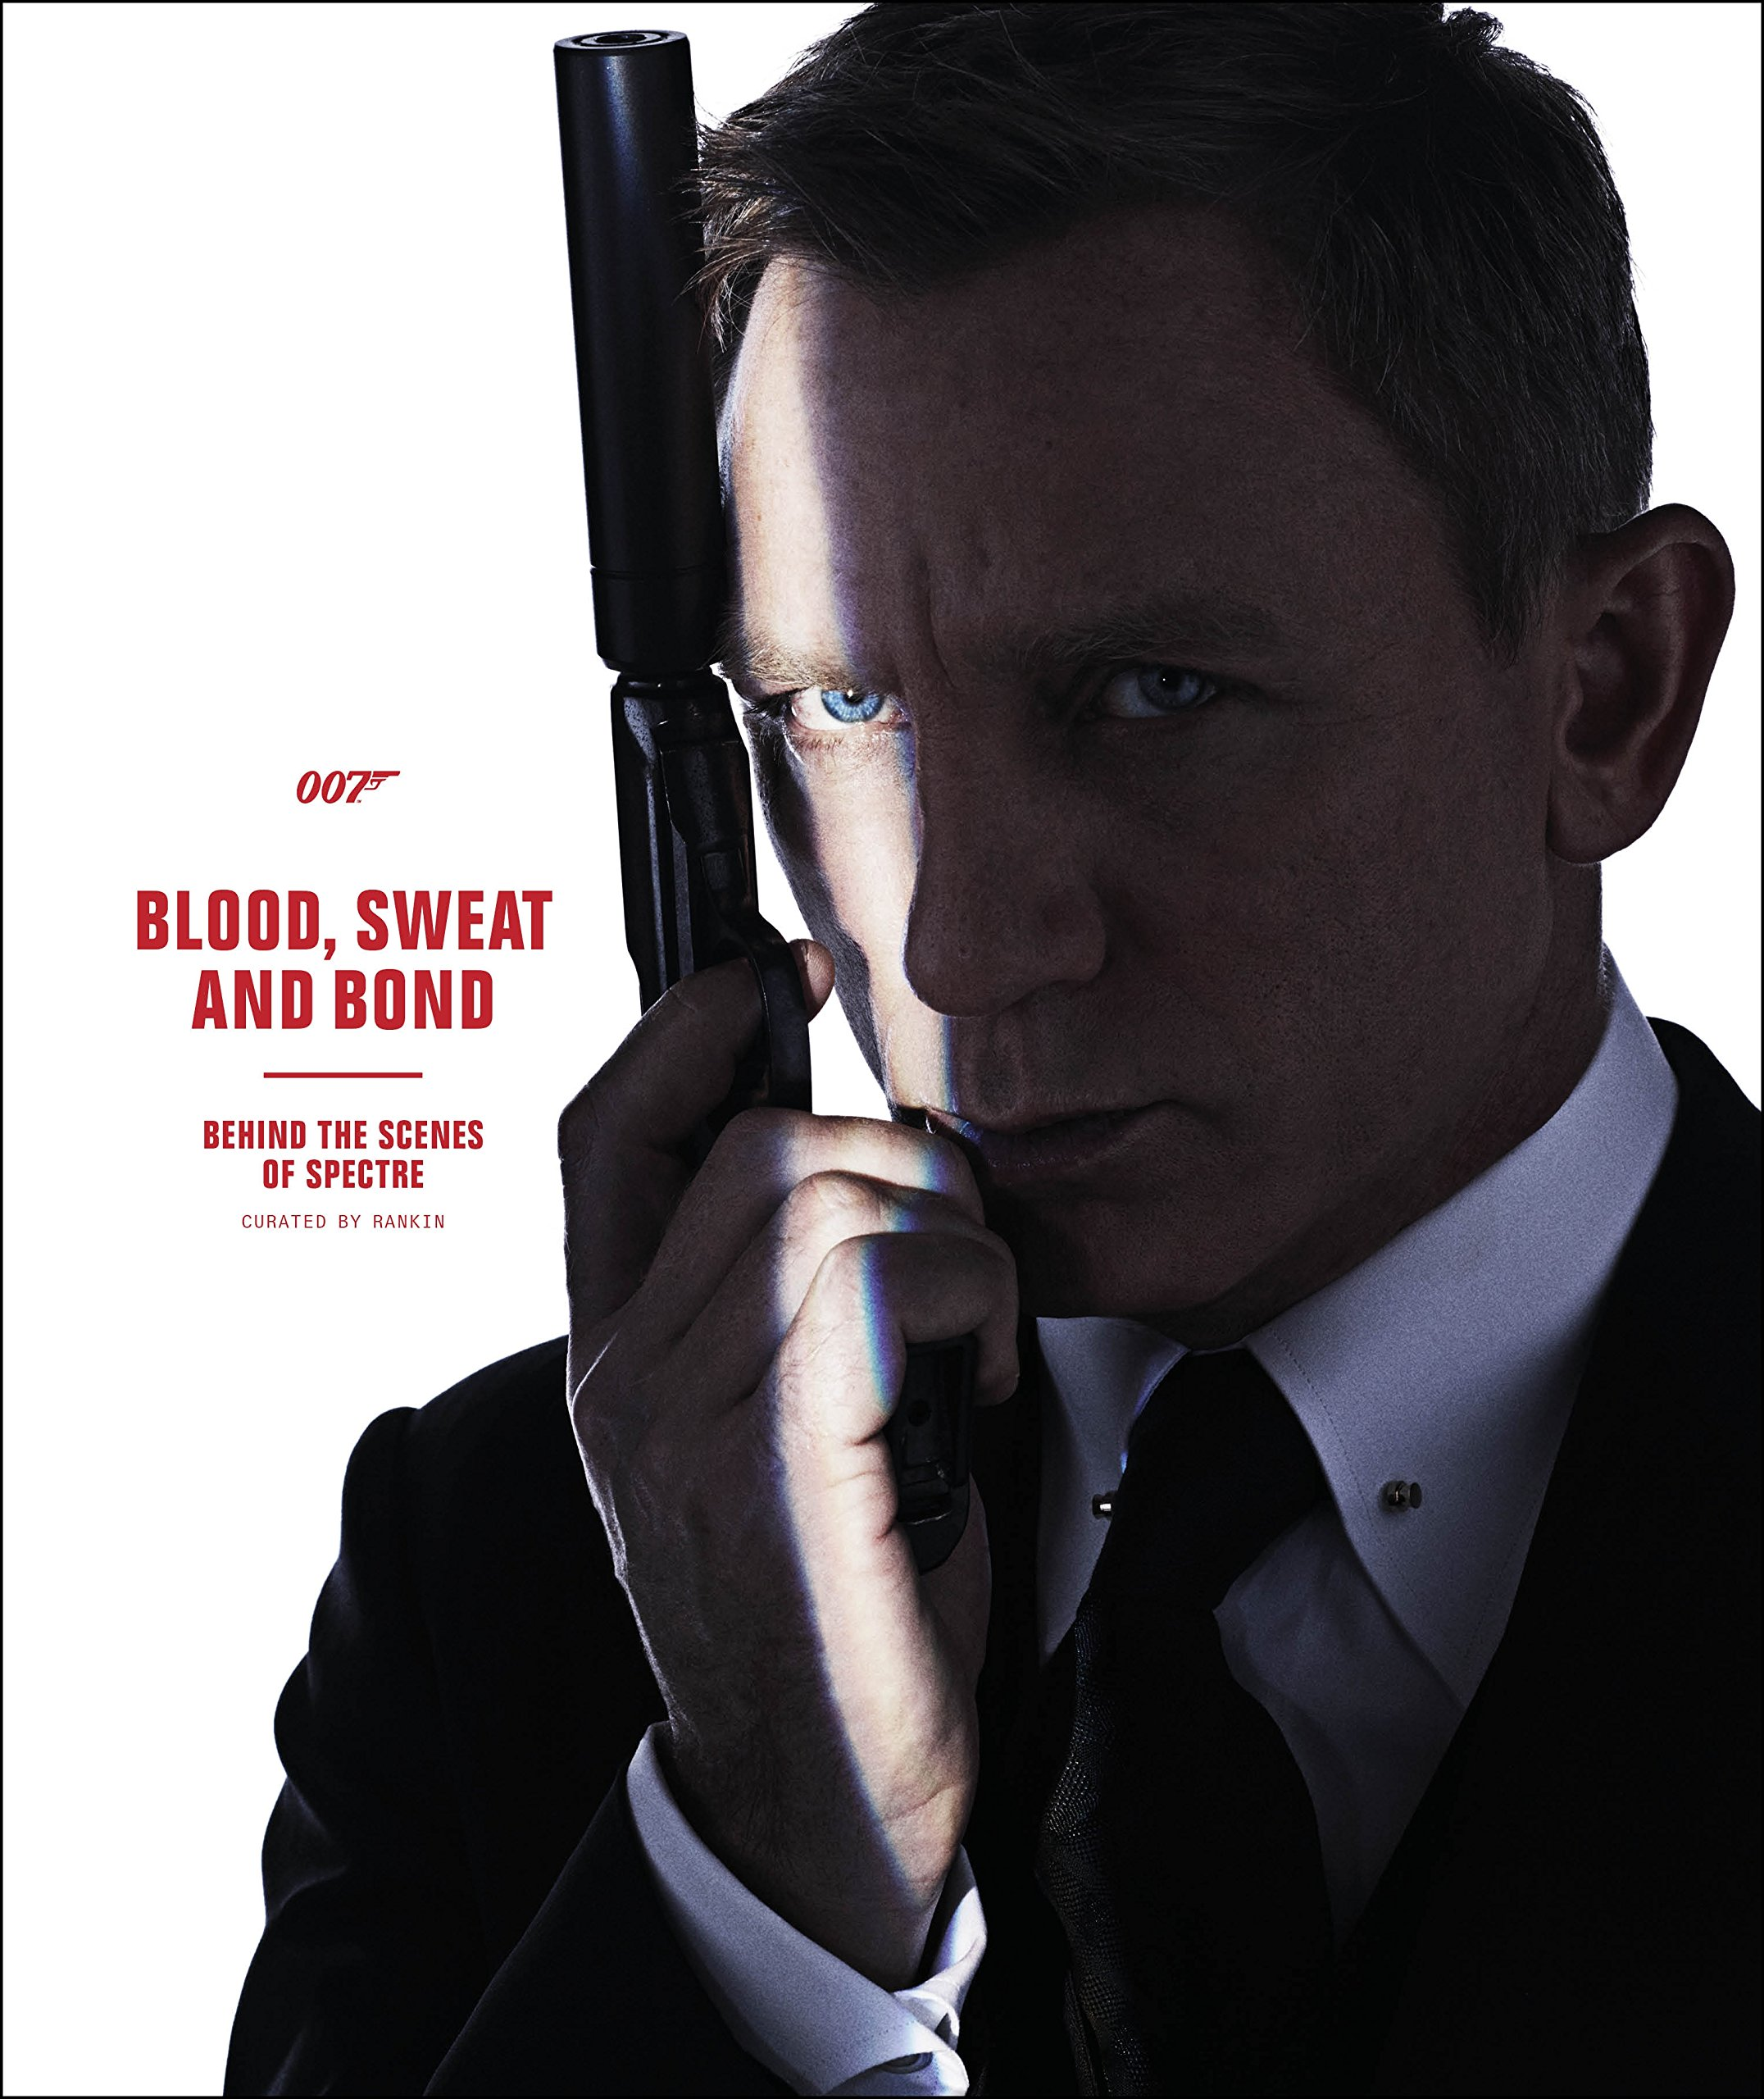 Blood, Sweat and Bond: Behind the Scenes of Spectre (Curated